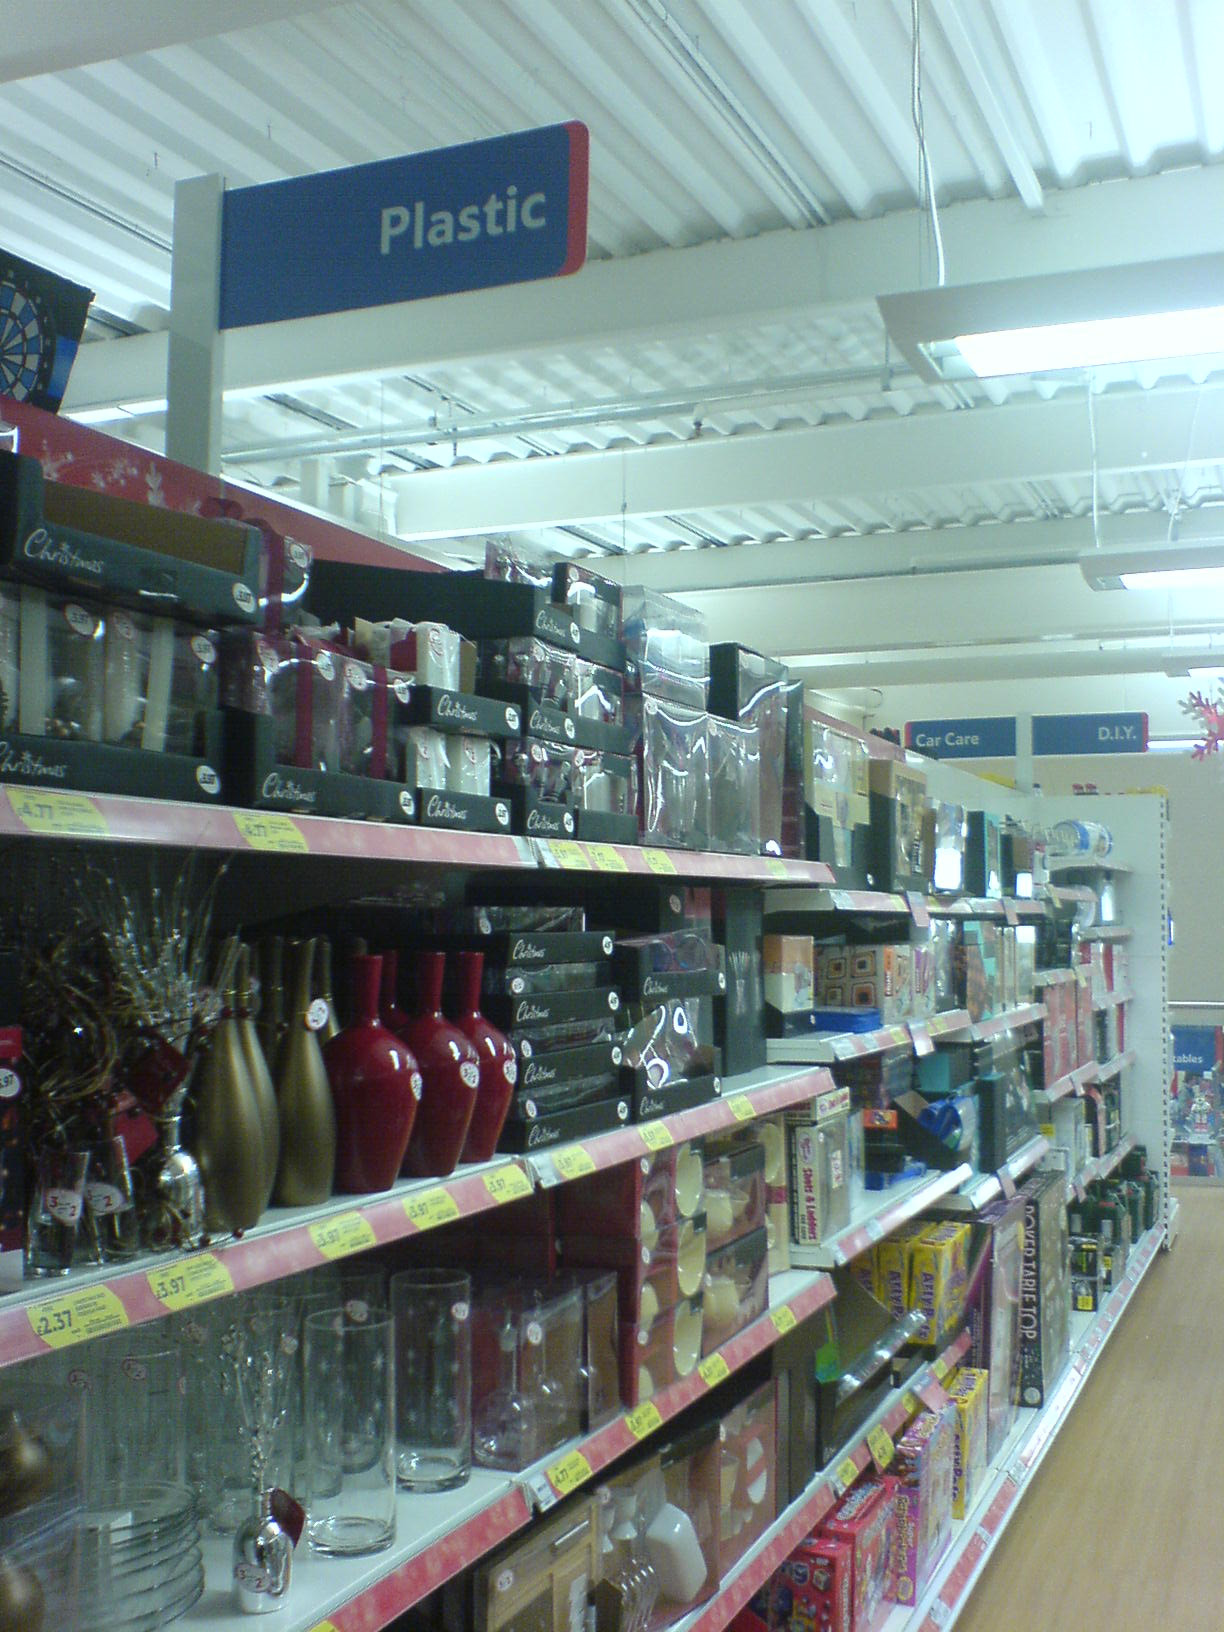 Tesco Monkspath, Solihull, Plastic